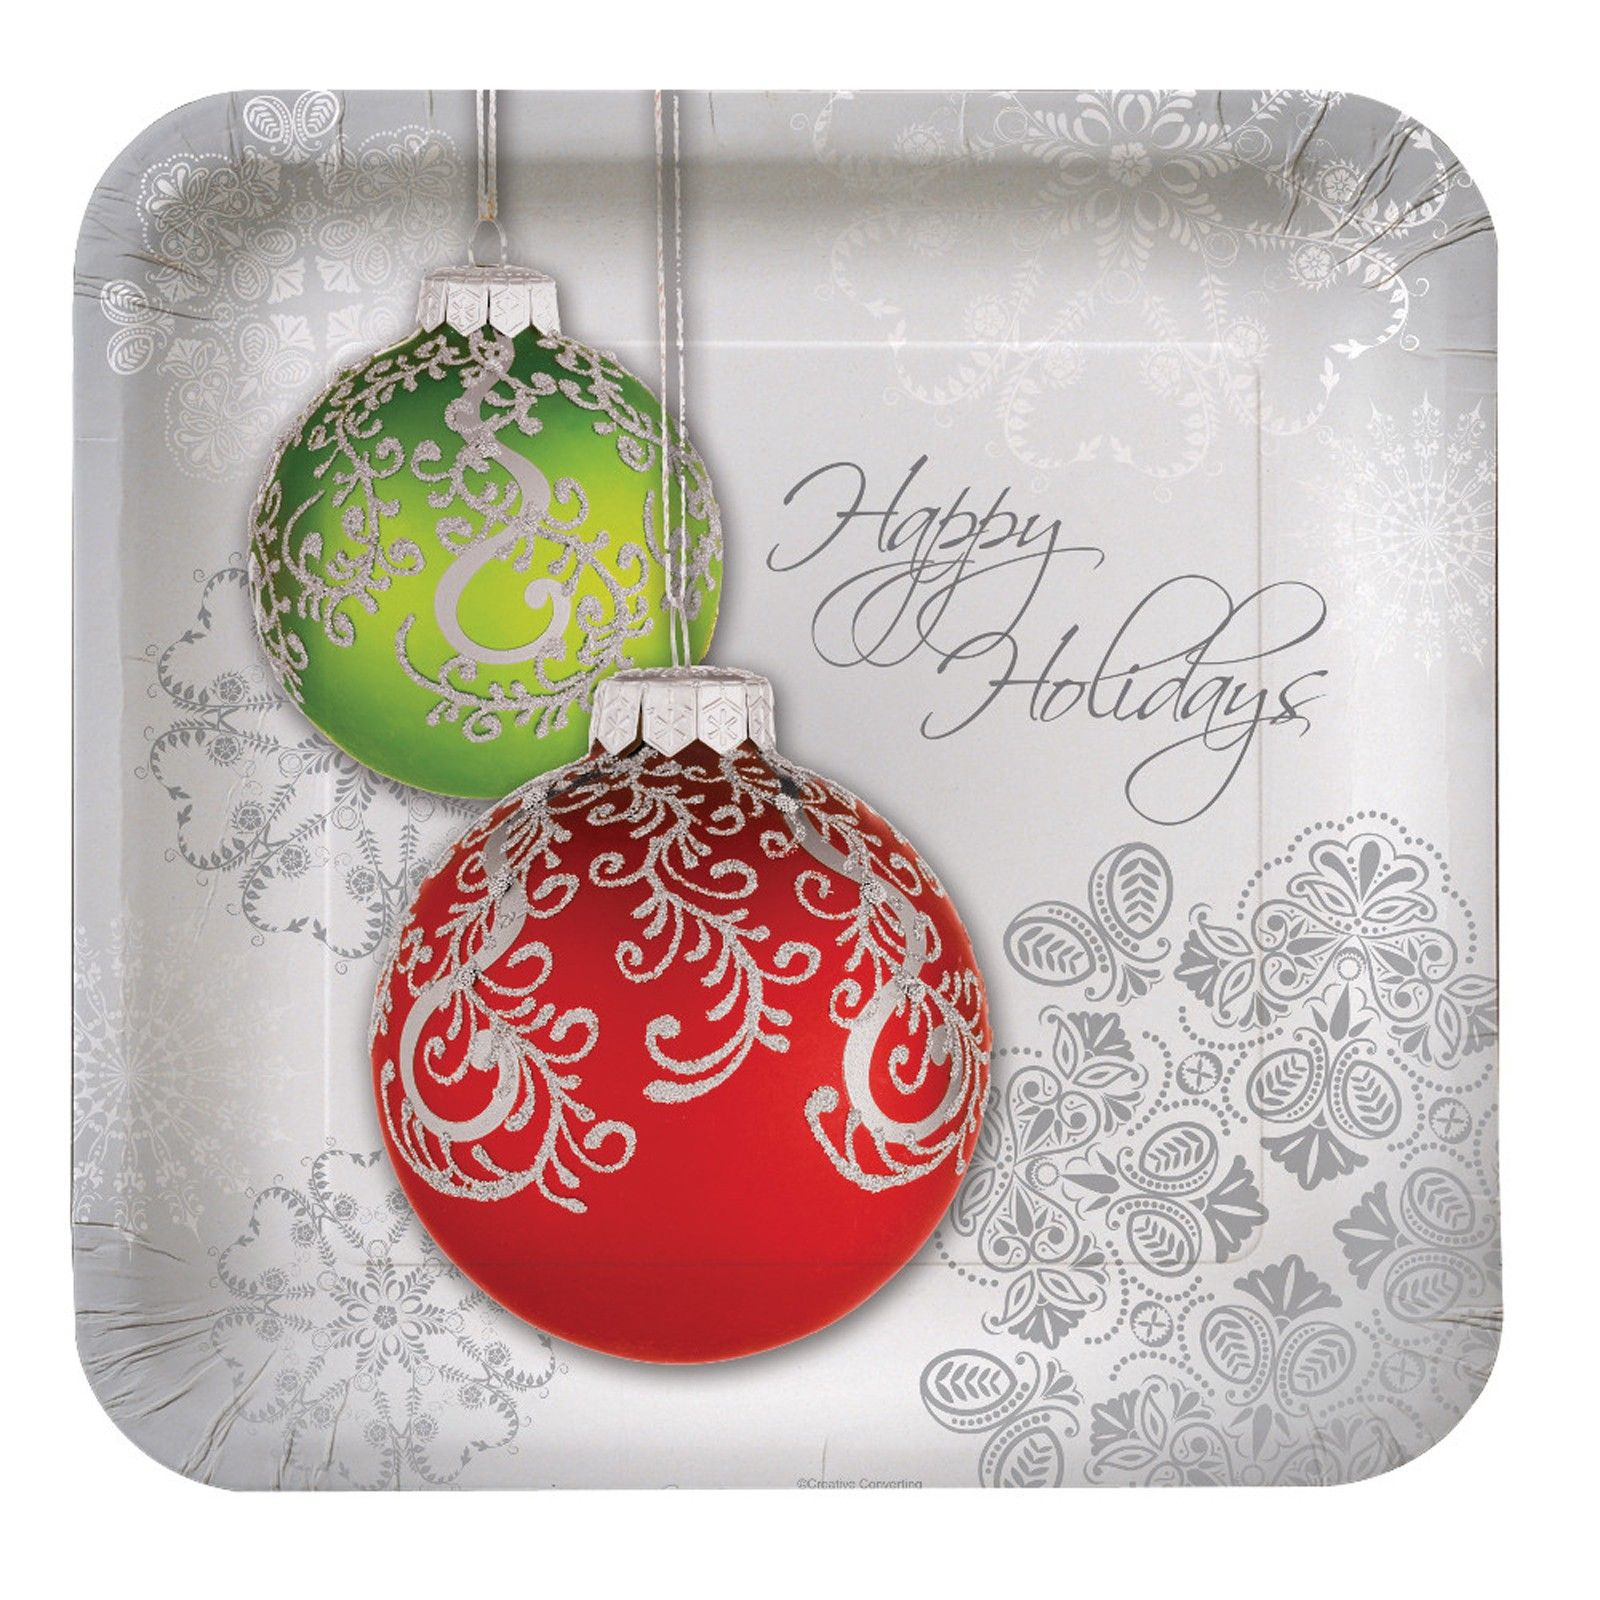 Jingle Bells Square Dinner Plates | 89976 | 2013  8 Plates $4.00